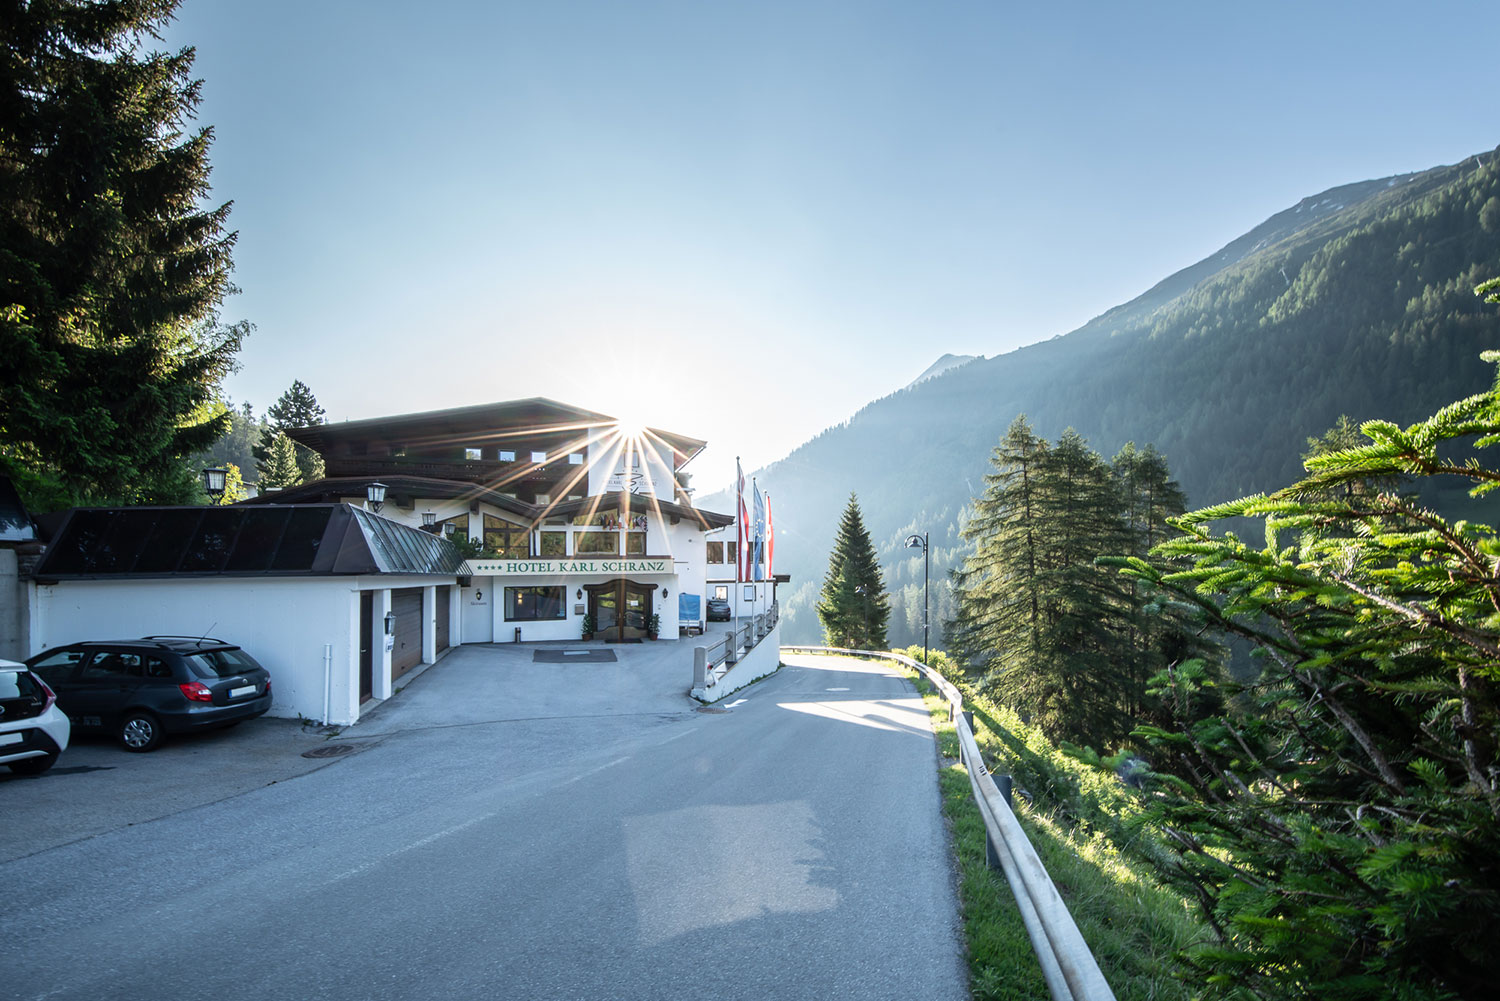 Short stays at the Hotel Karl Schranz